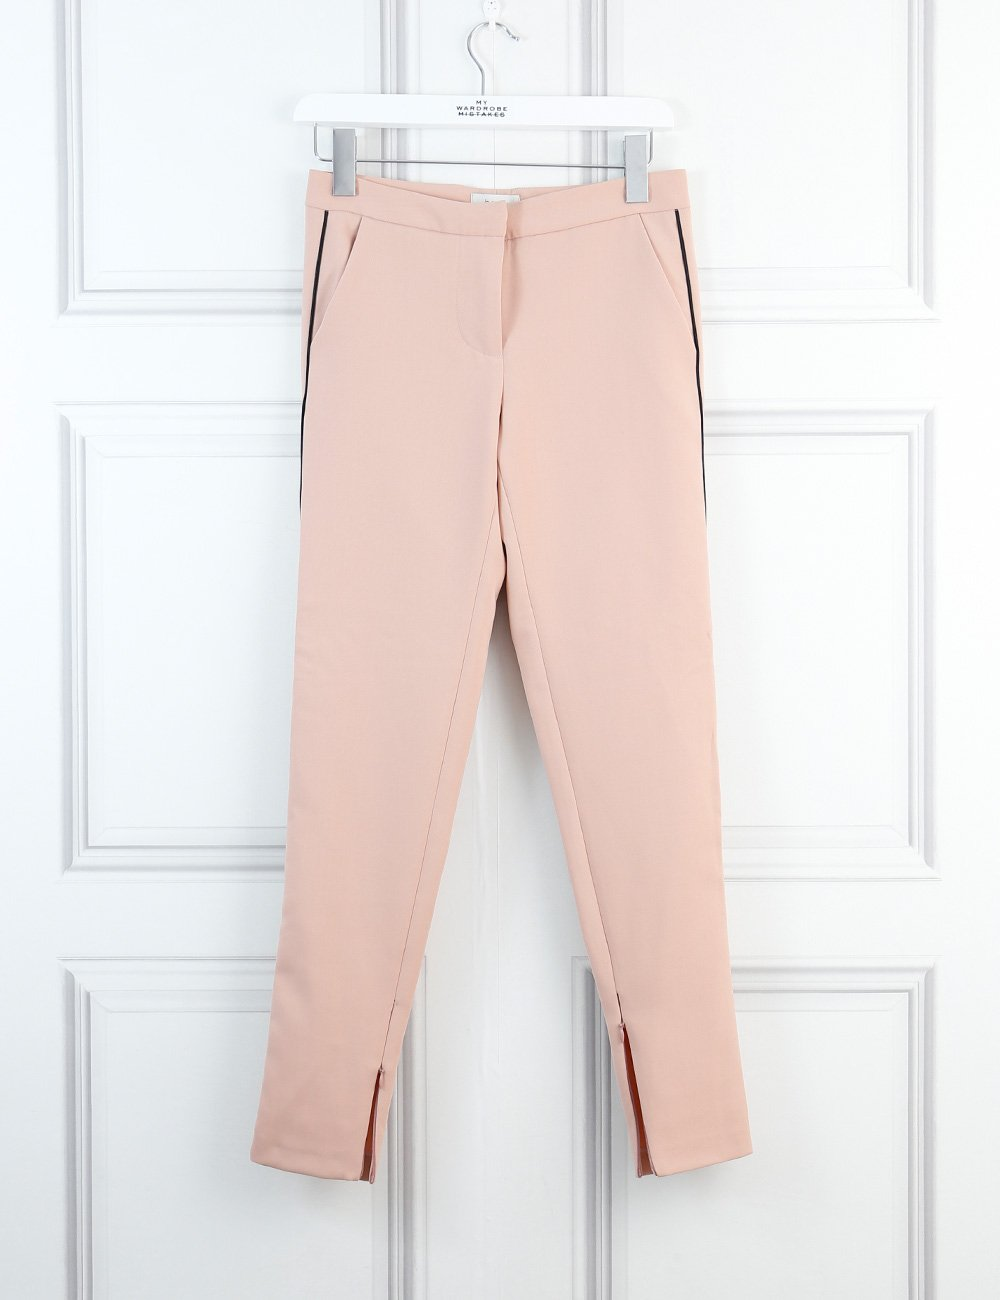 Hoss Intropia pink tailored trousers with contrasting black piping and ankle zips 6Uk